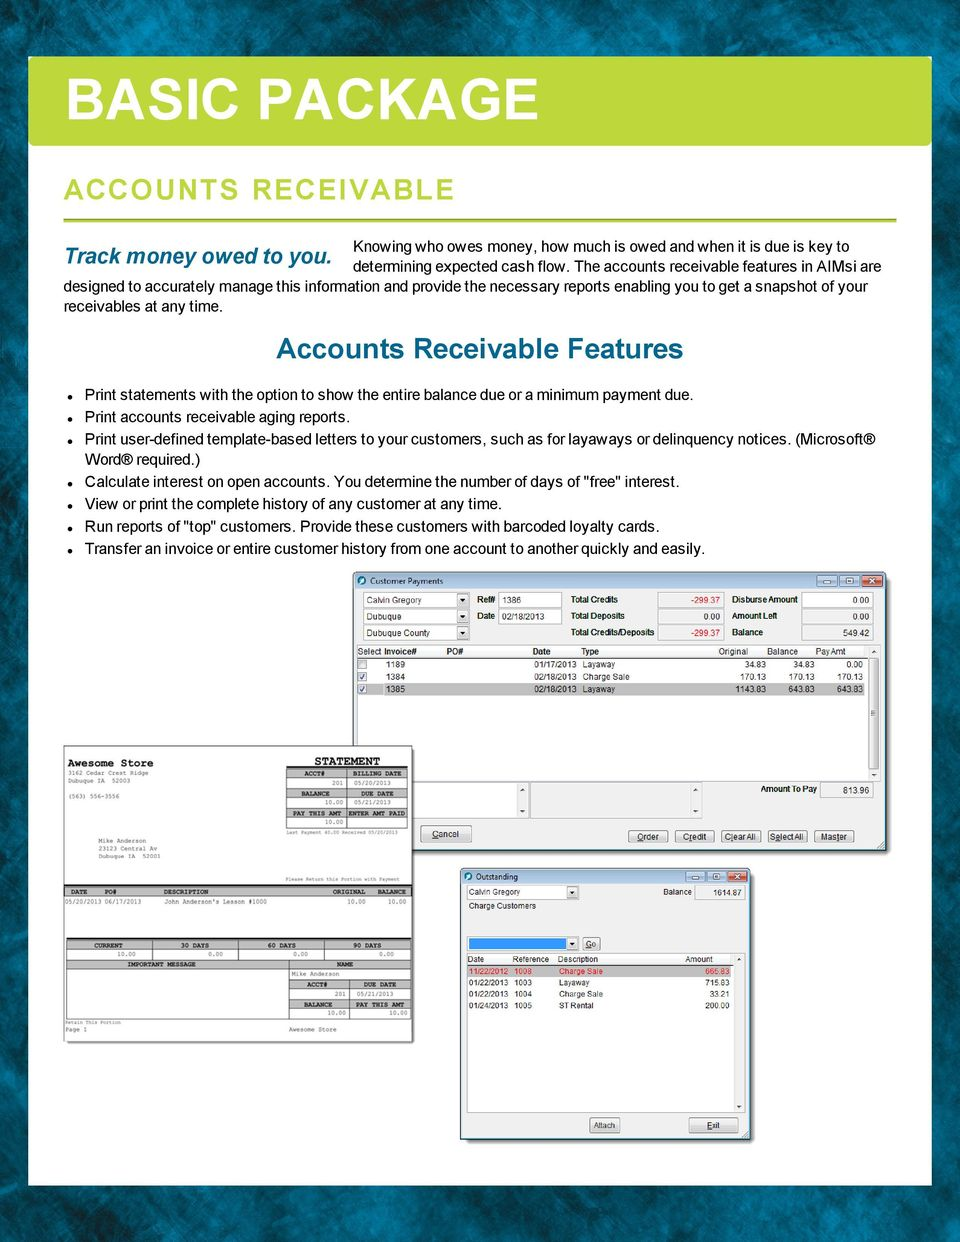 Track money owed to you. Accounts Receivabe Features Print statements with the option to show the entire baance due or a minimum payment due. Print accounts receivabe aging reports.